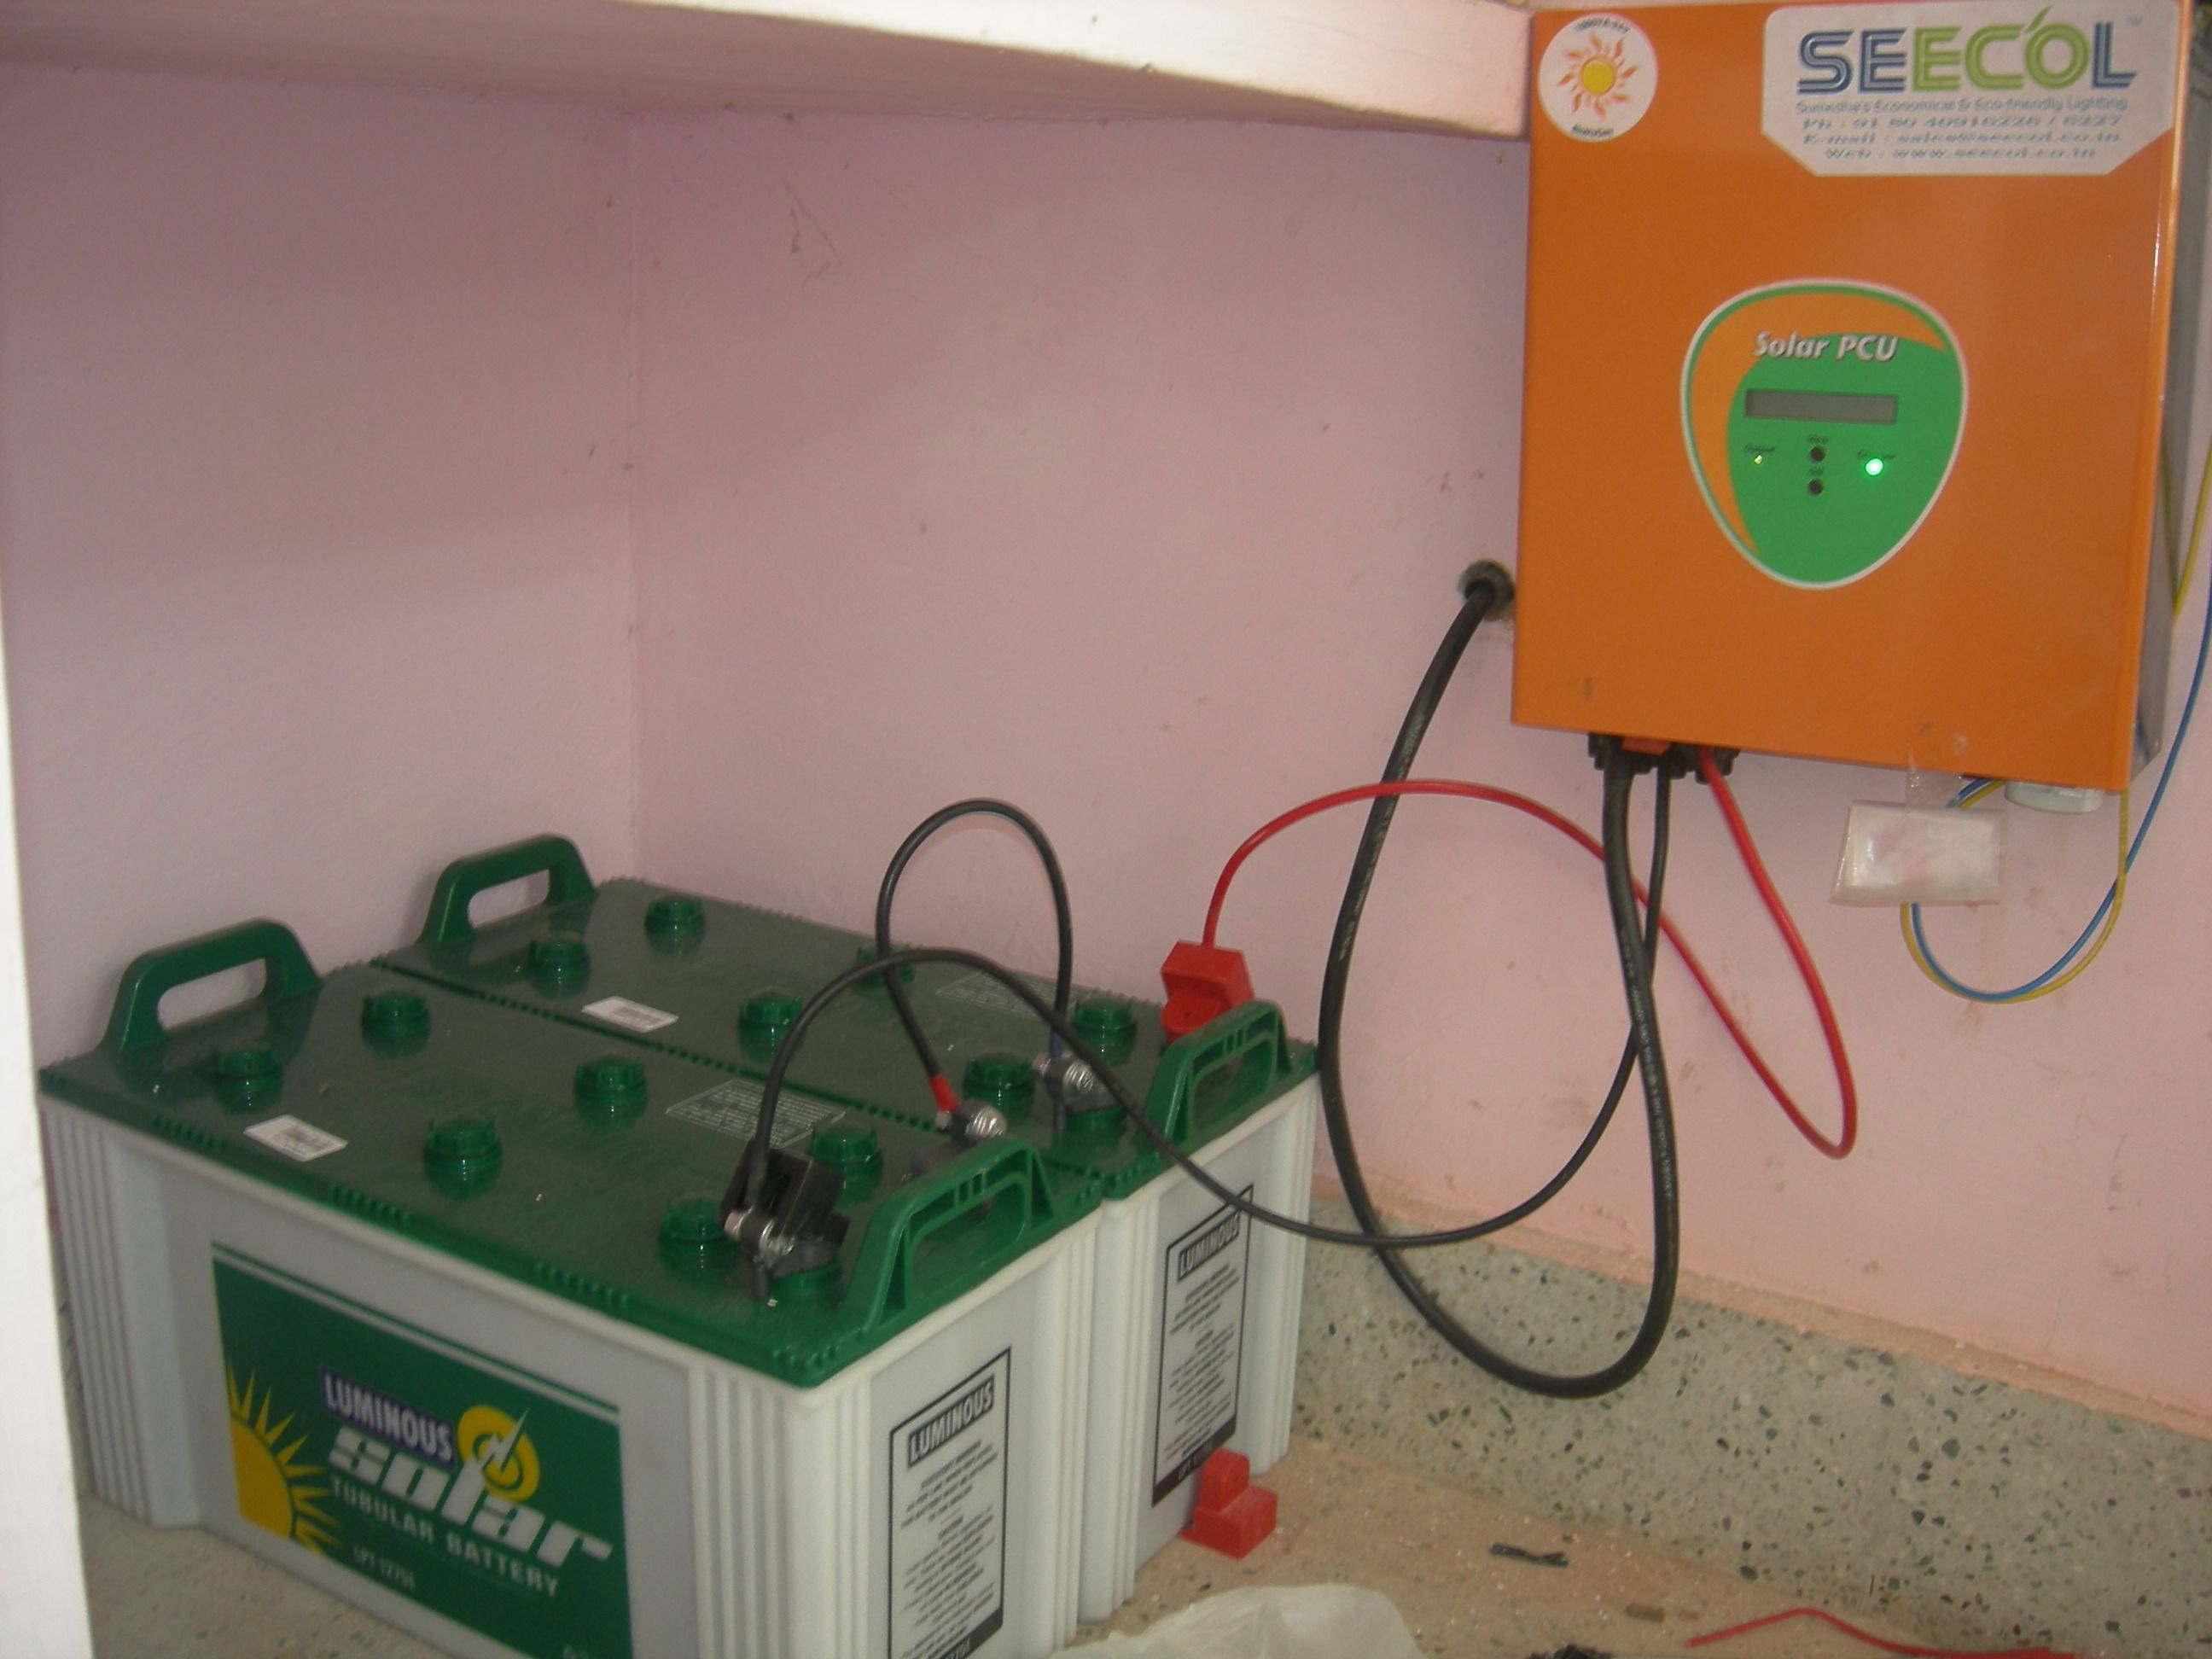 Solar Inverter Manufacturers In India Seecol Is The Leading Solar Inverter Manufacturers In India Dealers And Distributors Solar Inverter Solar Manufacturing